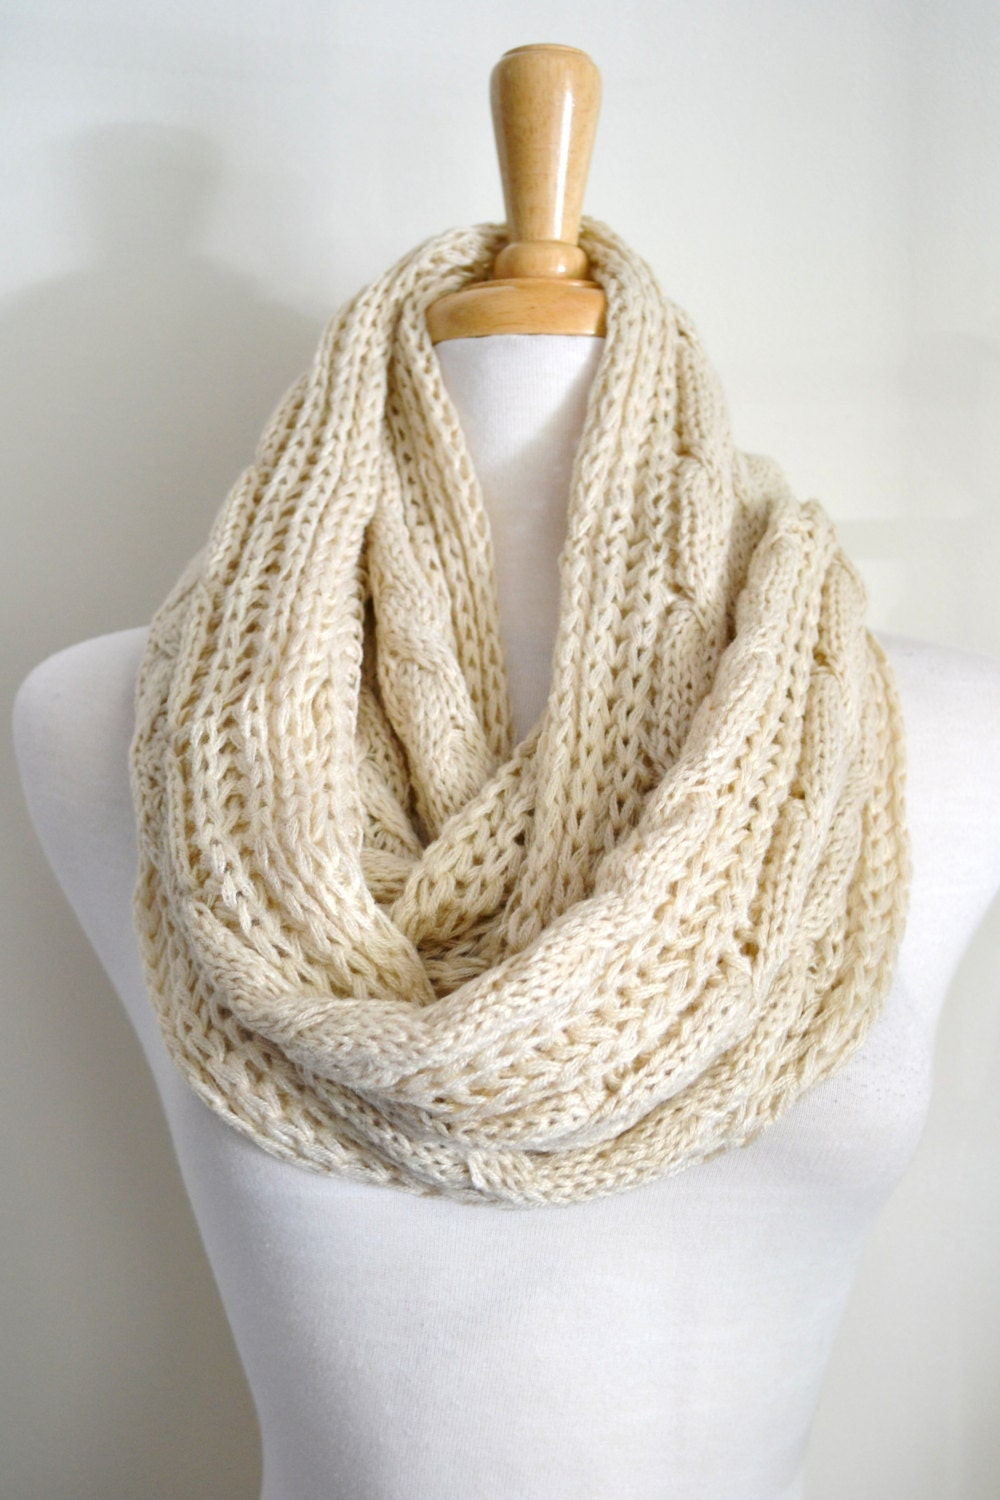 Cable Knit Infinity Scarf Pattern : Oatmeal Creme Beige Cable Knit Infinity Loop Scarf Snood